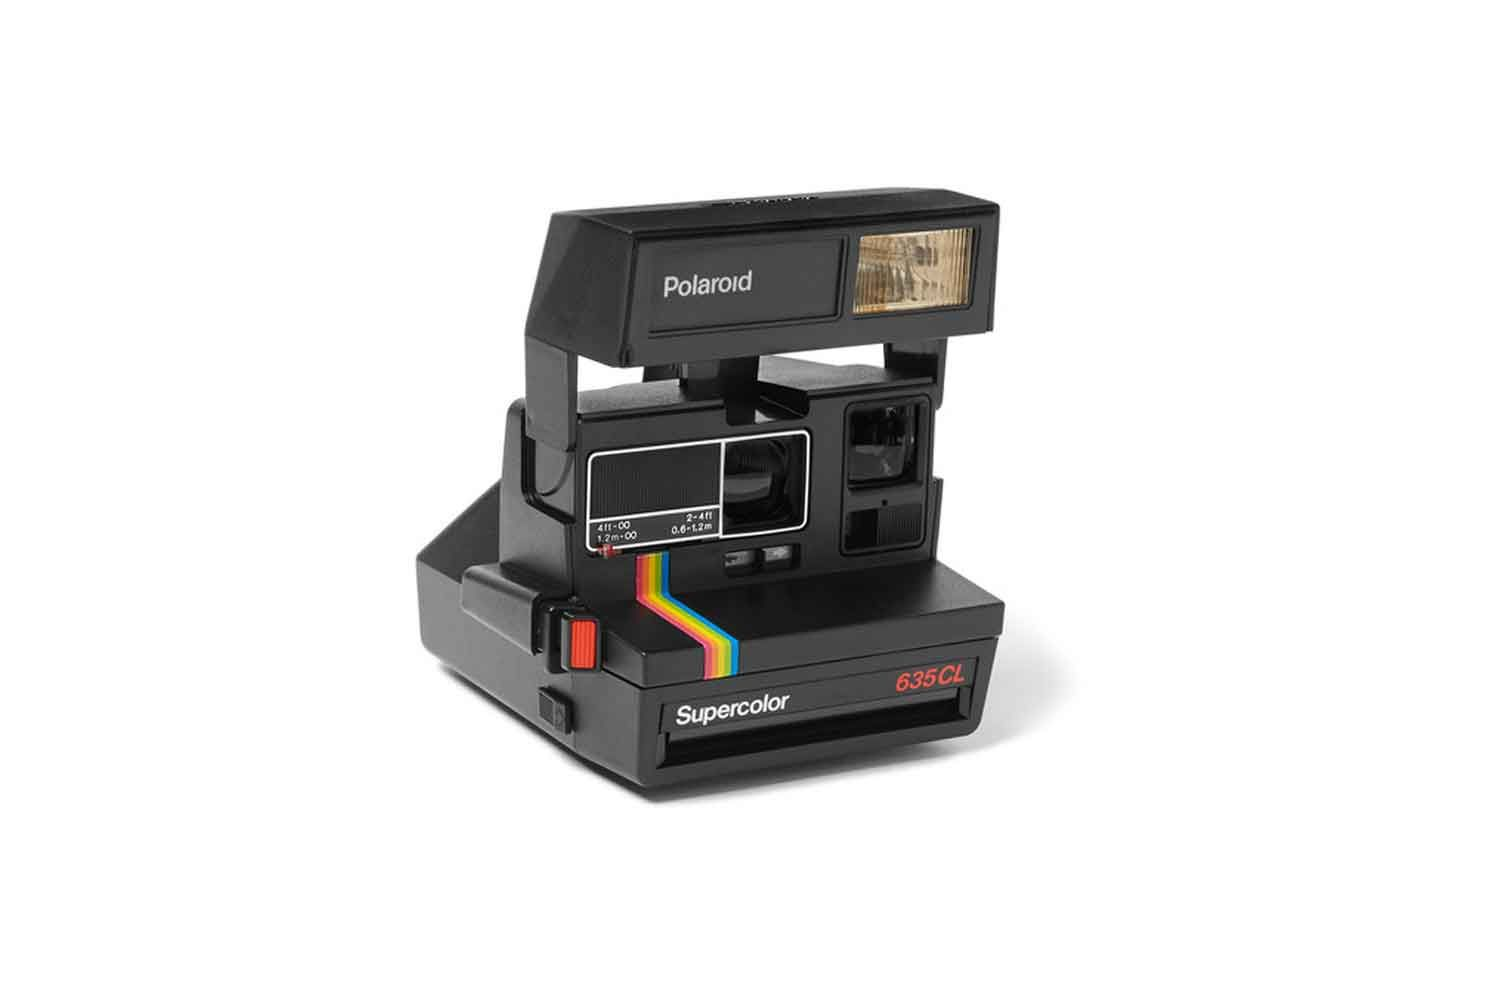 50th birthday presents · Impossible Project Polaroid camera, available at mrporter.com